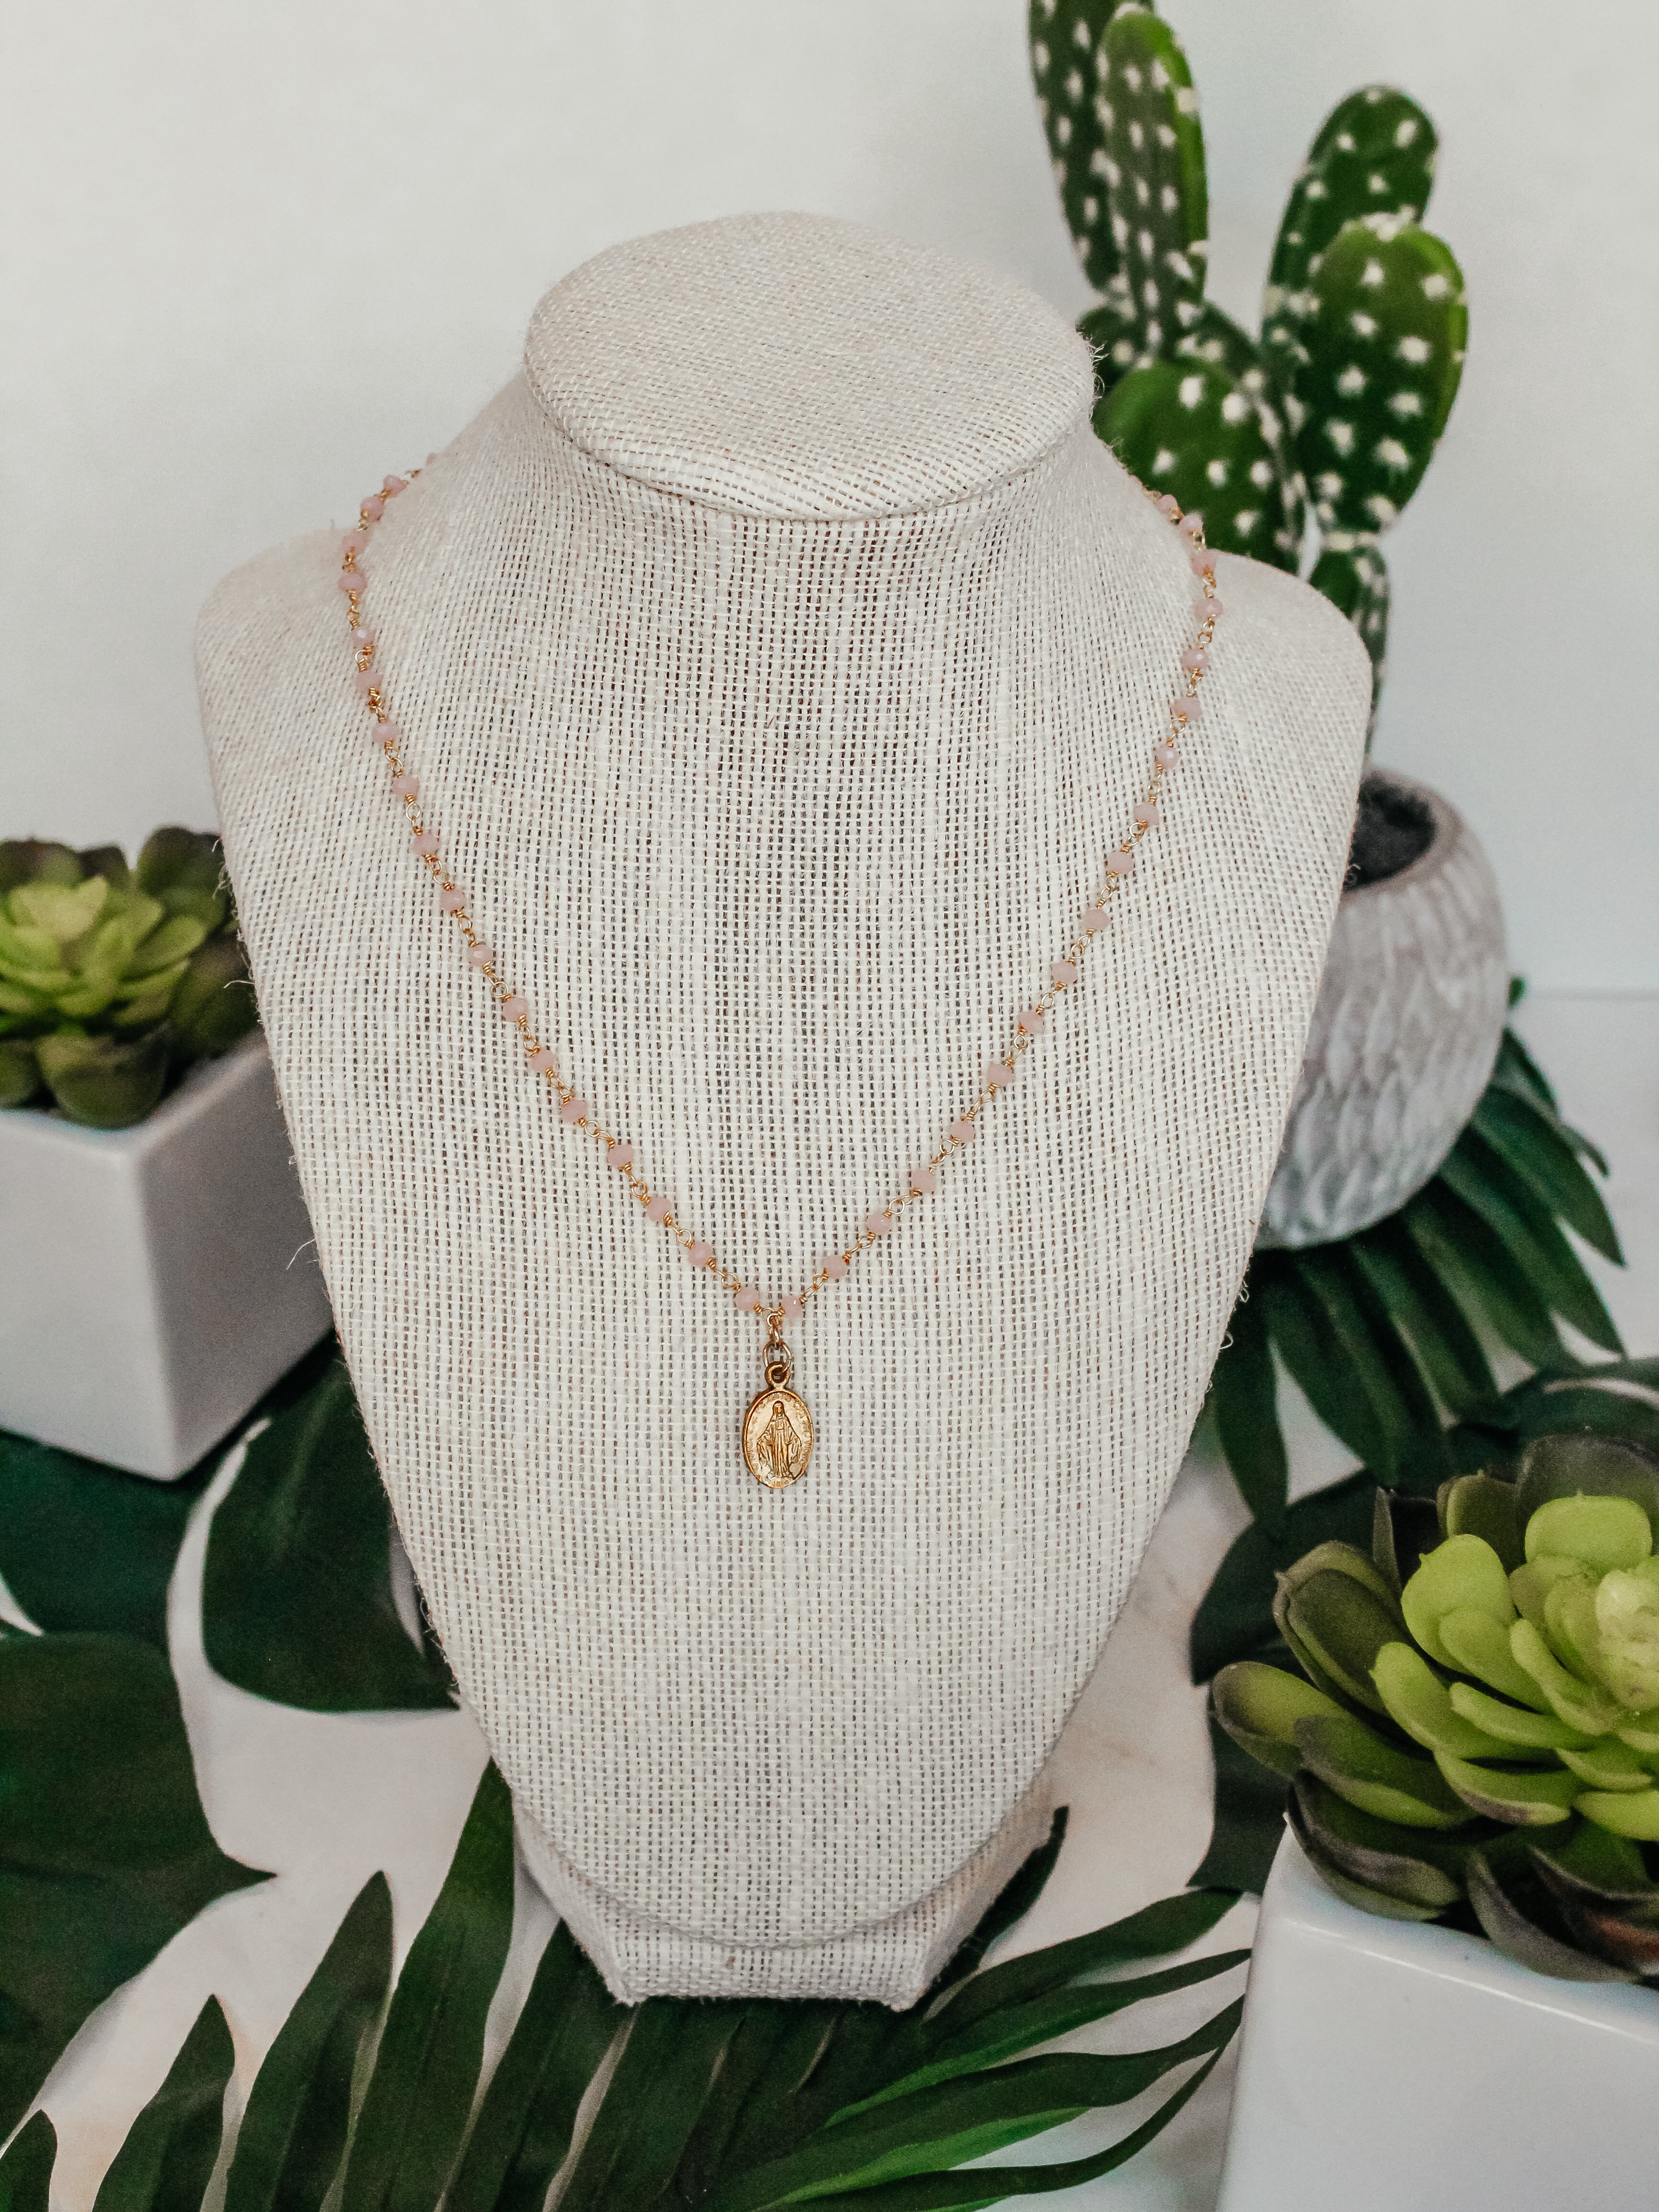 The Aulivia Necklace